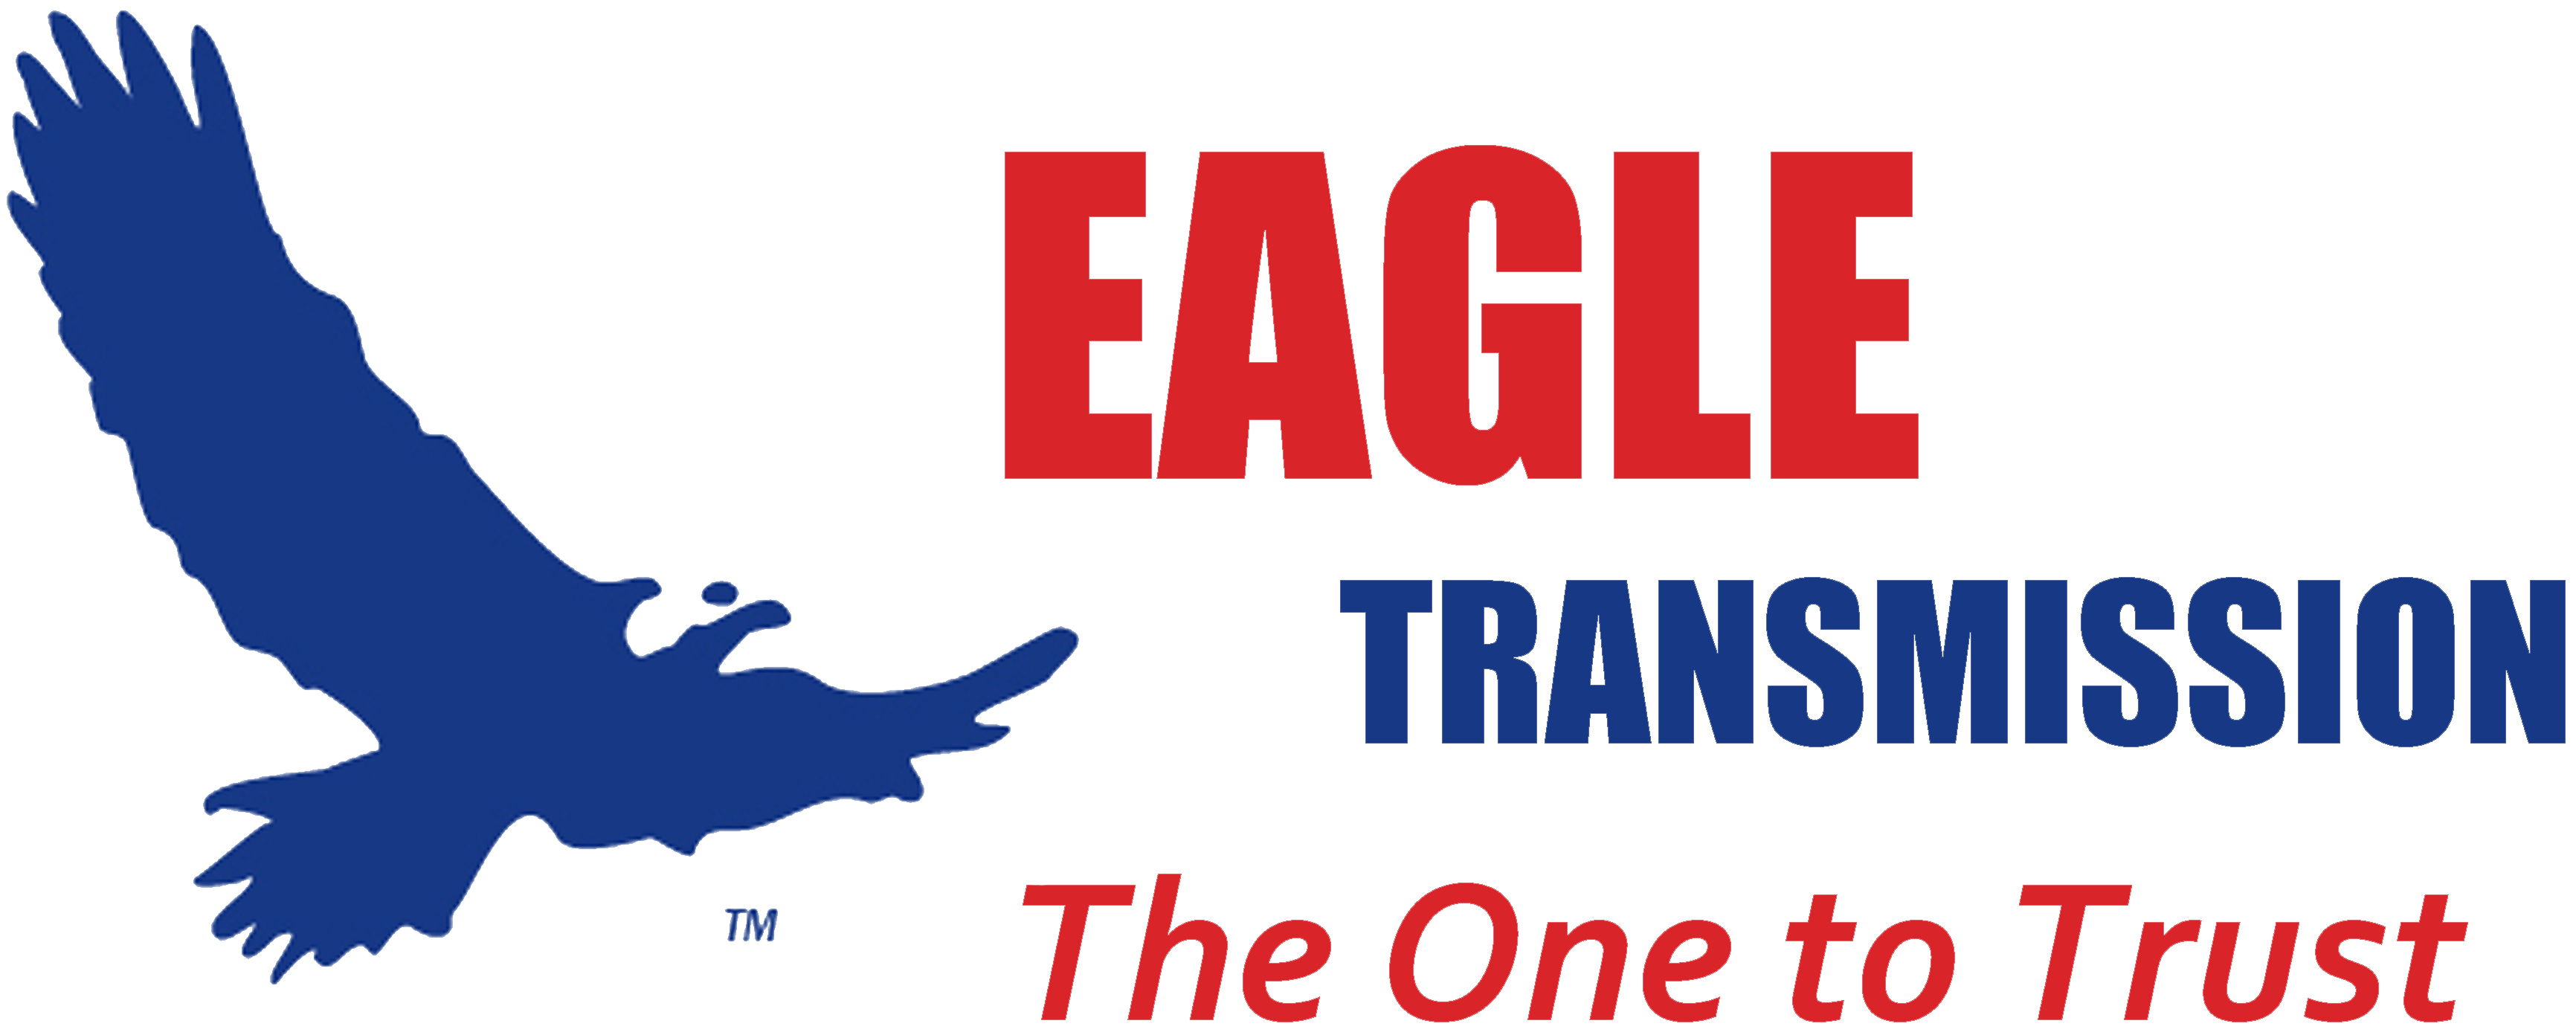 Transmission and Auto Repair Franchise